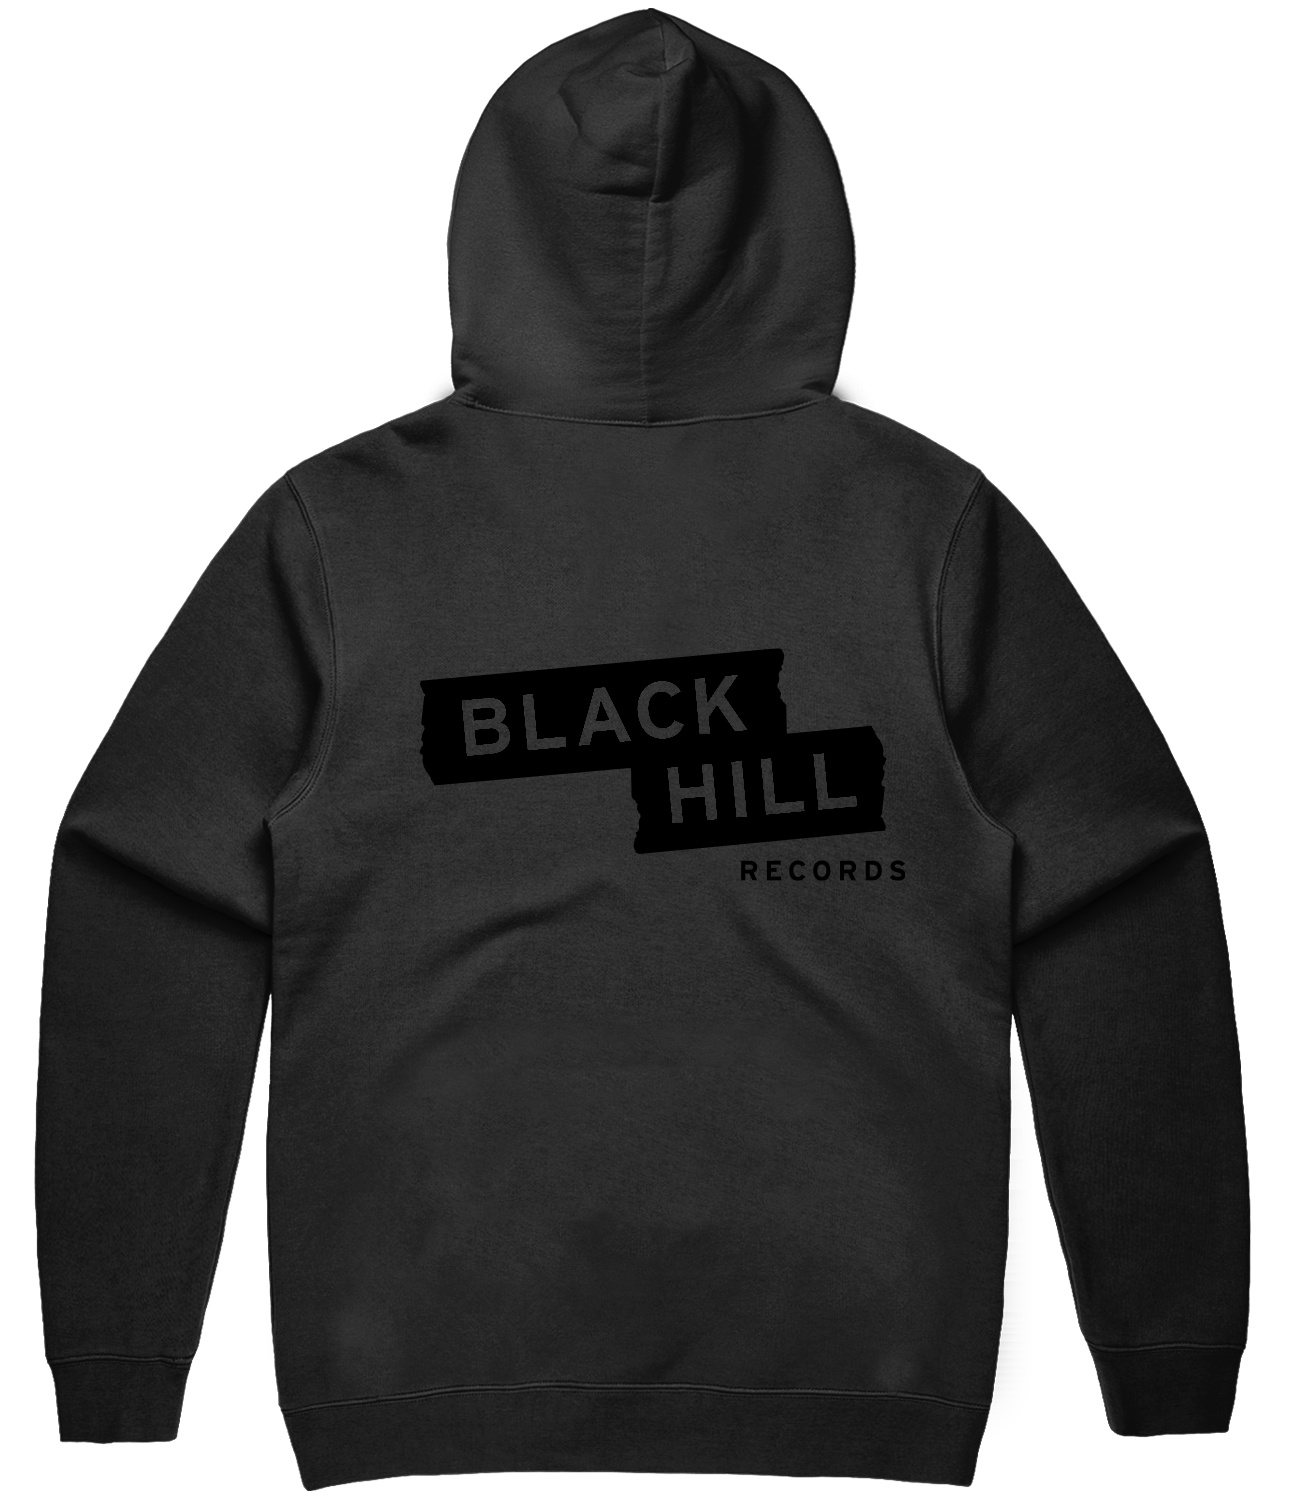 BLACK HILL RECORDS HOODIE